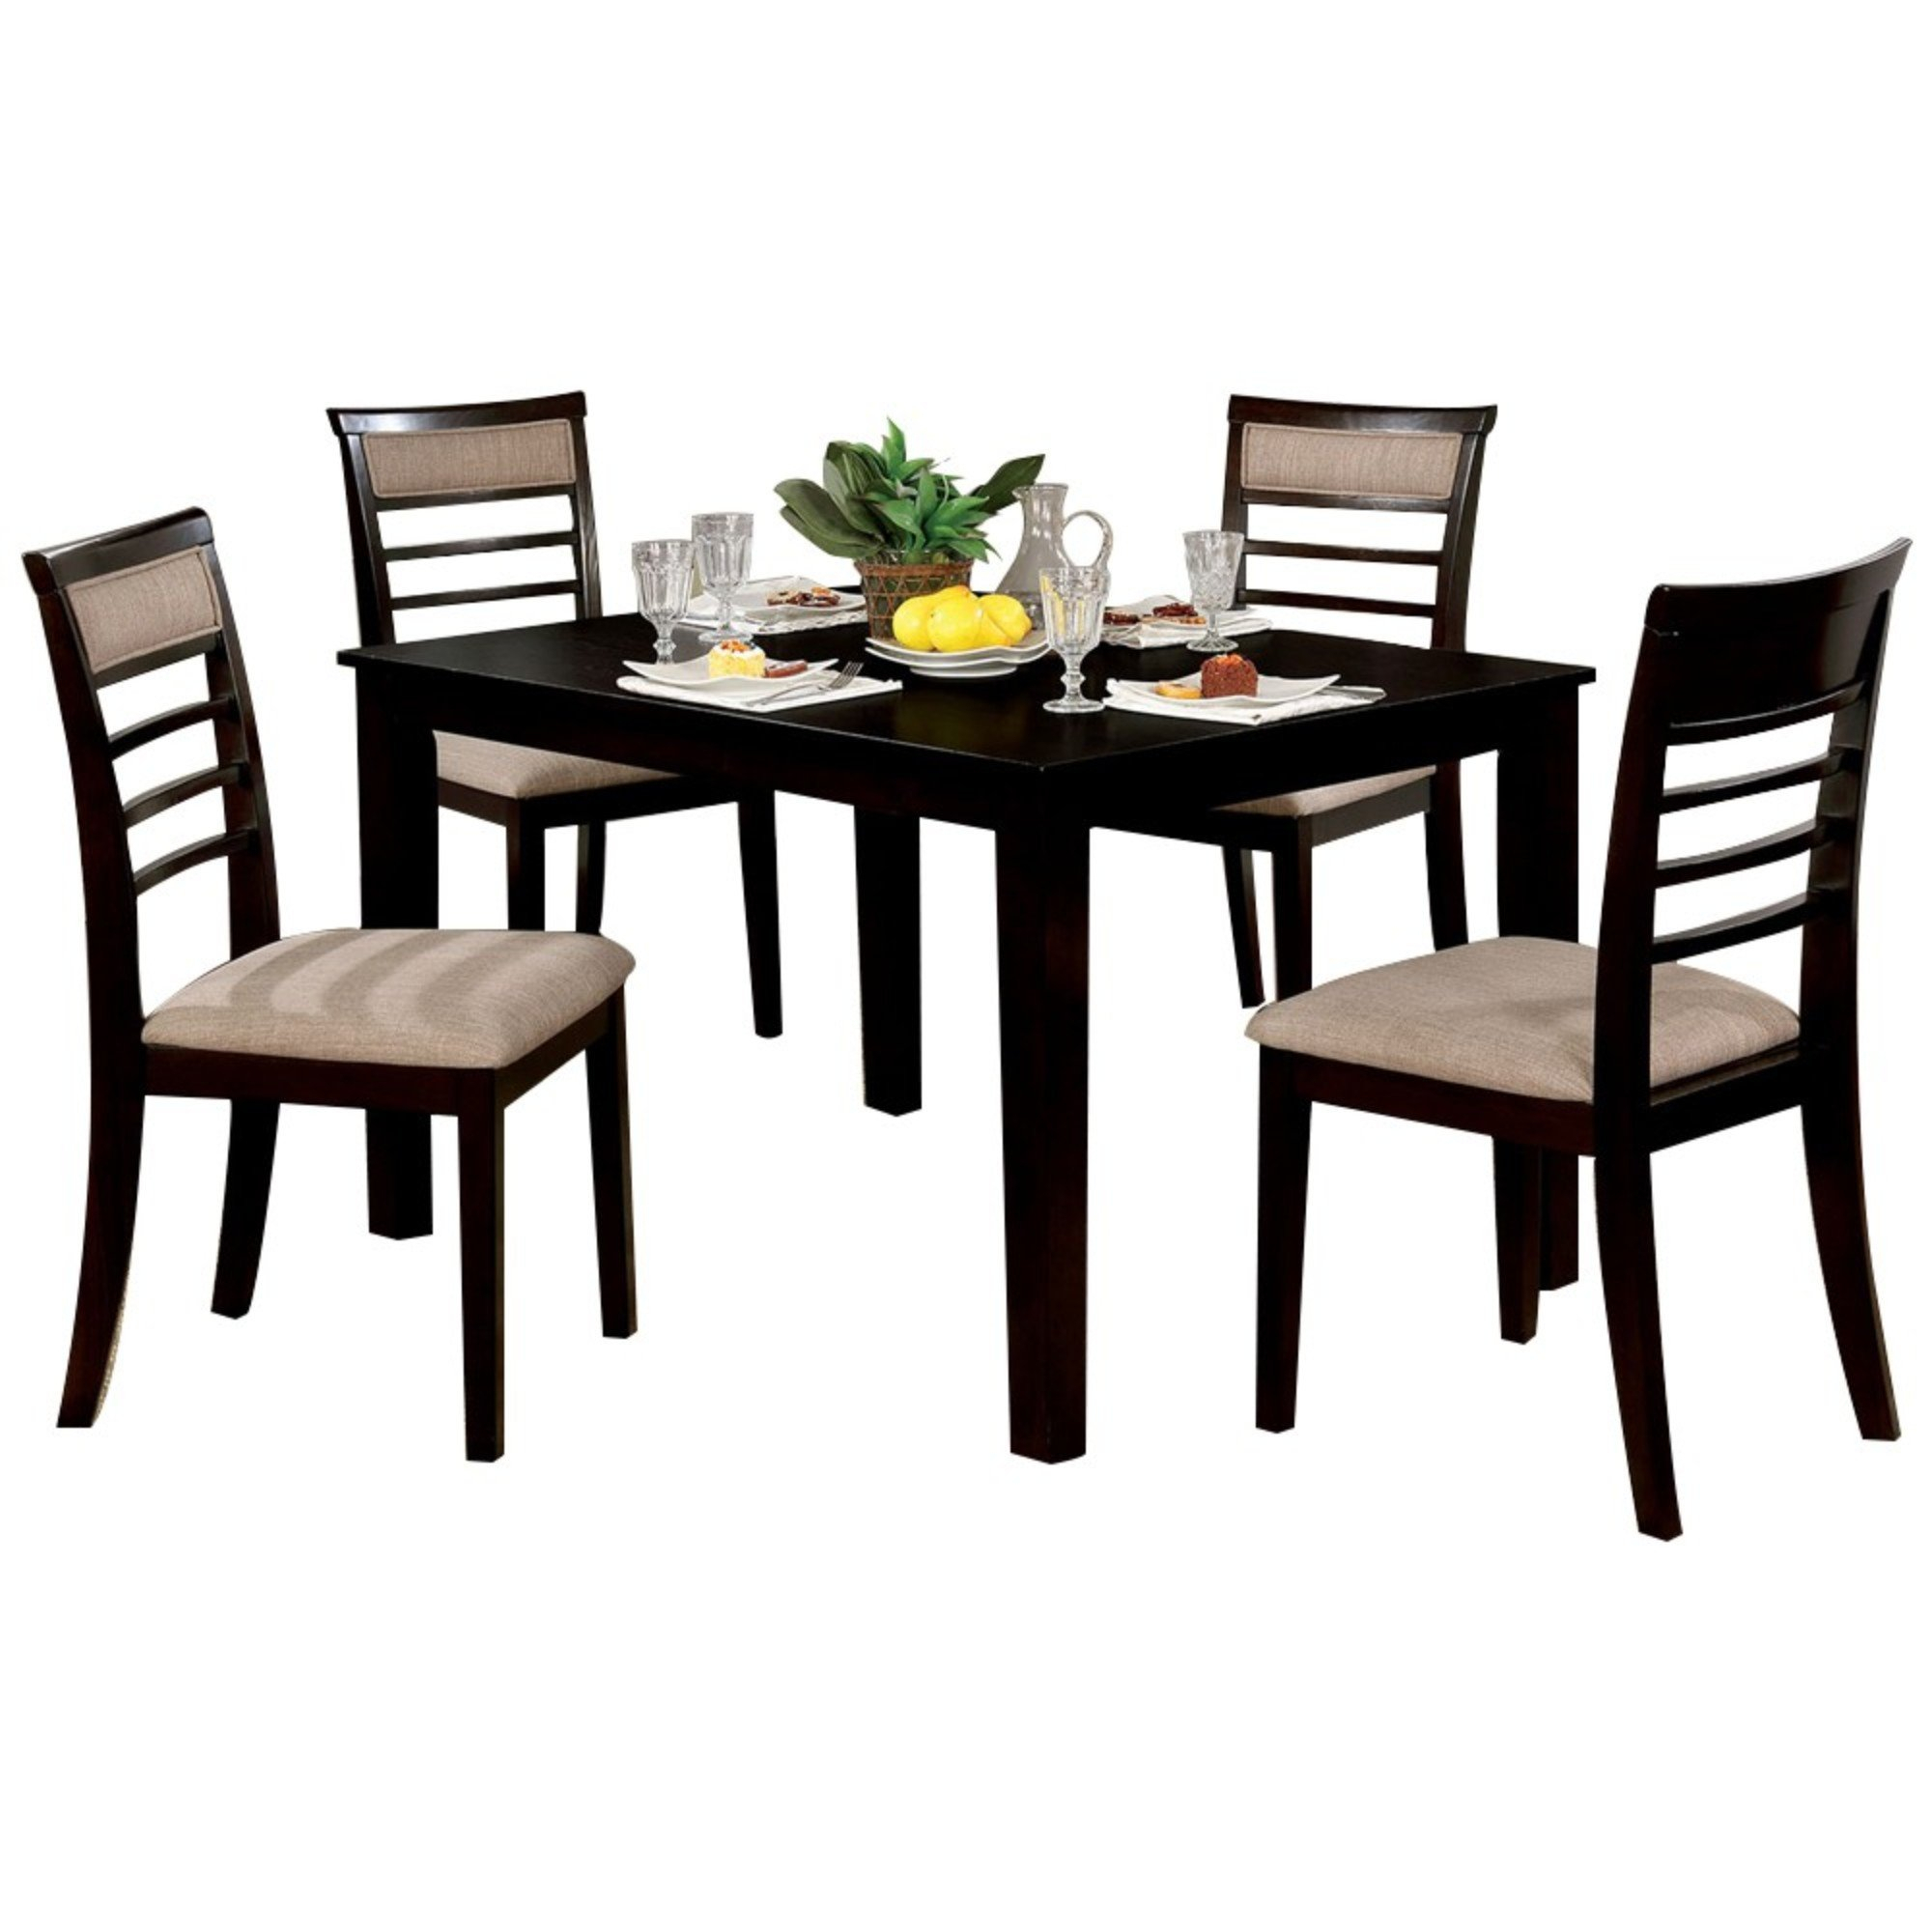 Hanska Wooden 5 Piece Counter Height Dining Table Set With Most Recently Released Hanska Wooden 5 Piece Counter Height Dining Table Sets (Set Of 5) (Photo 1 of 20)